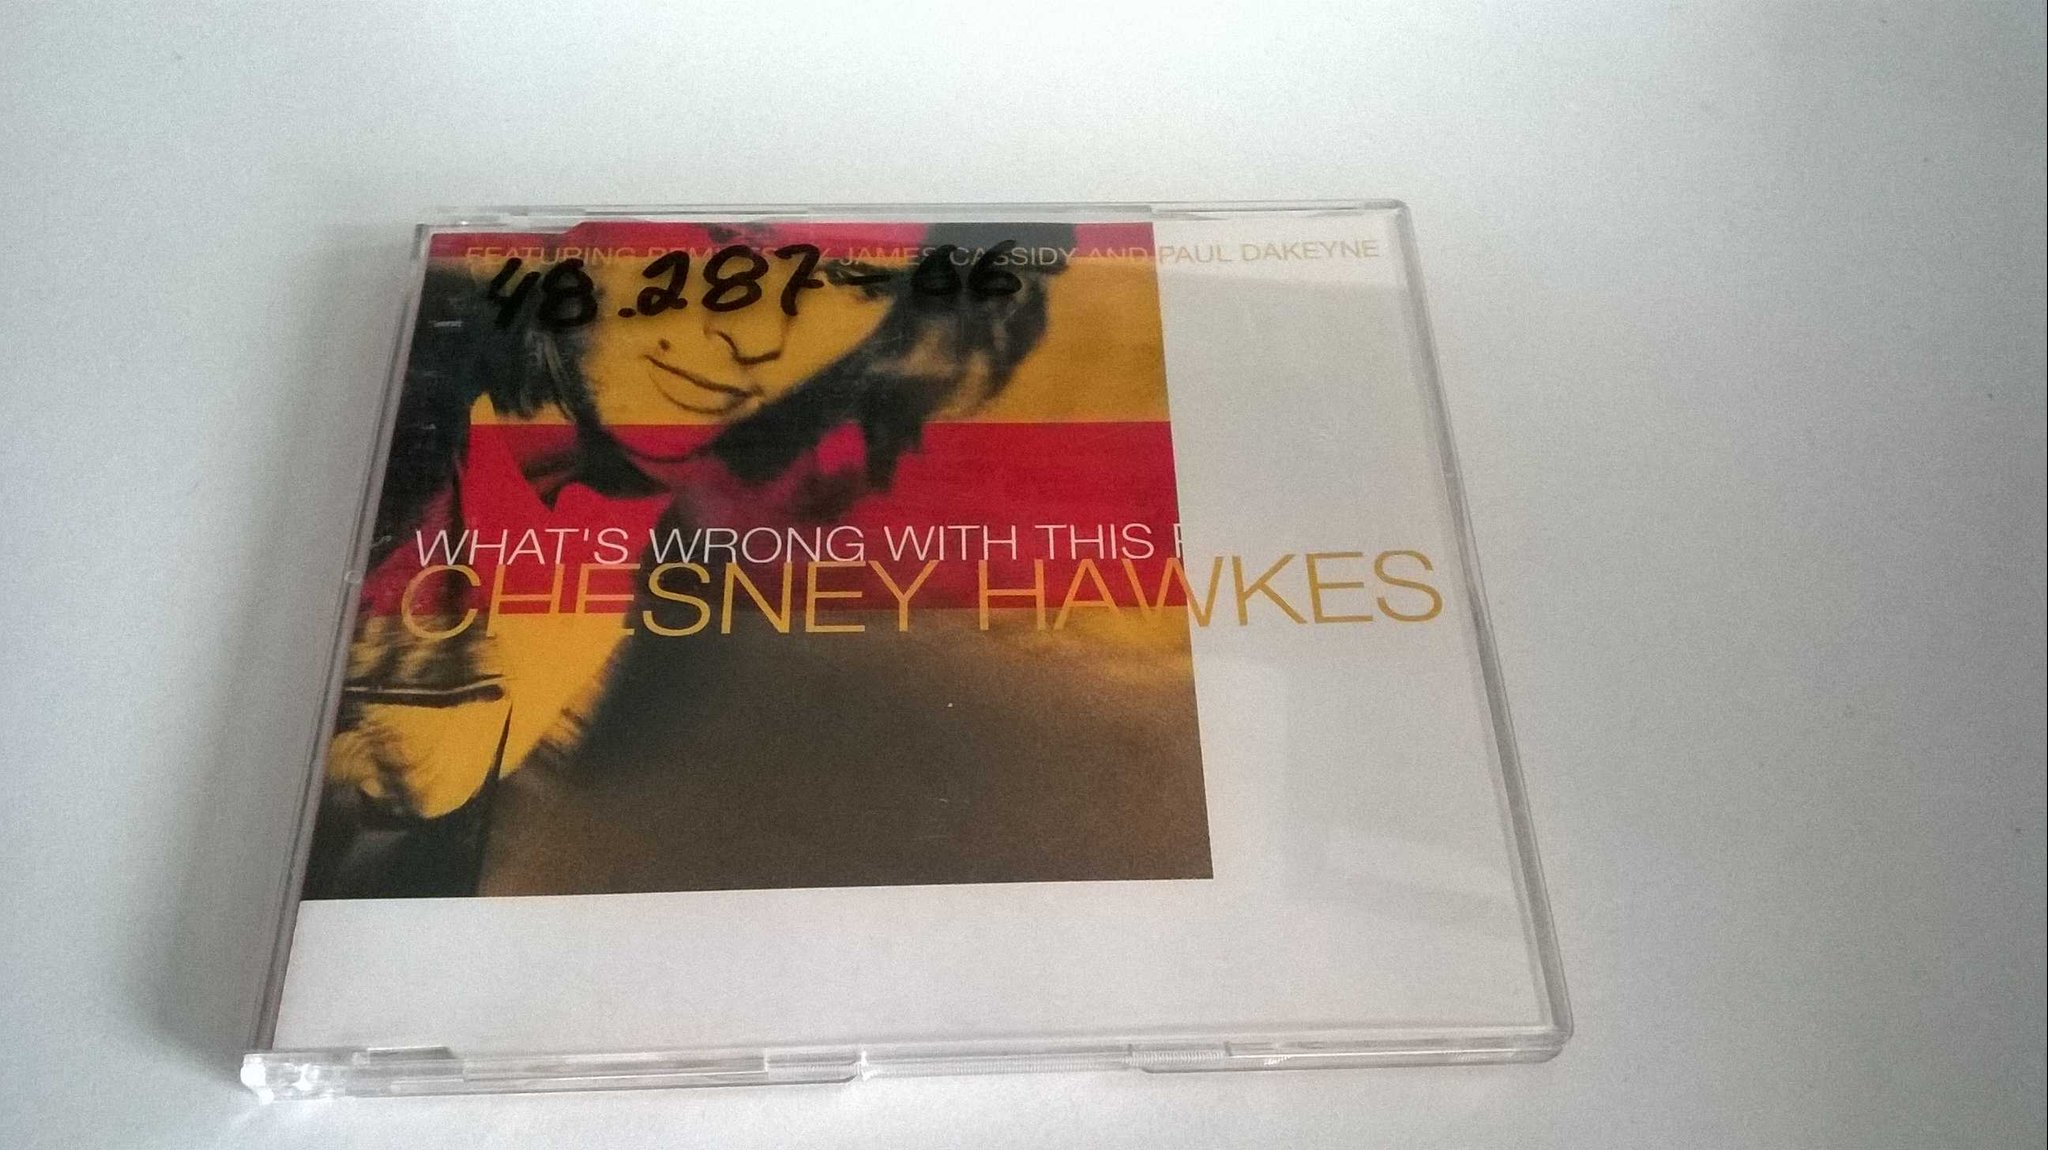 Chesney Hawkes - What's Wrong With This Picture? CD